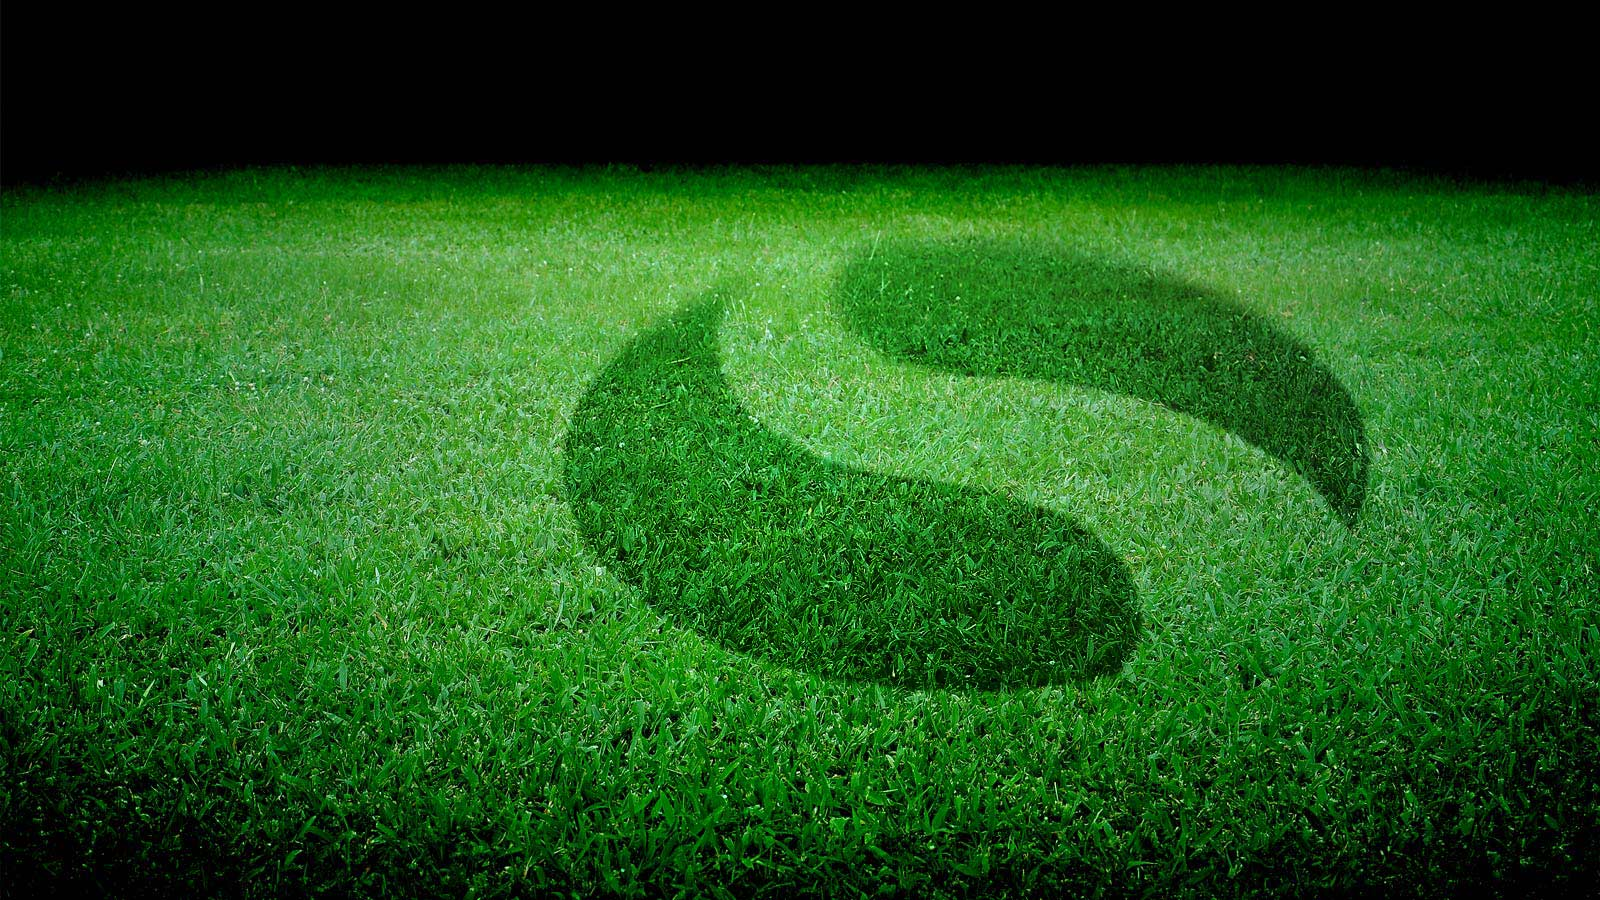 SubAir Logo in grass field